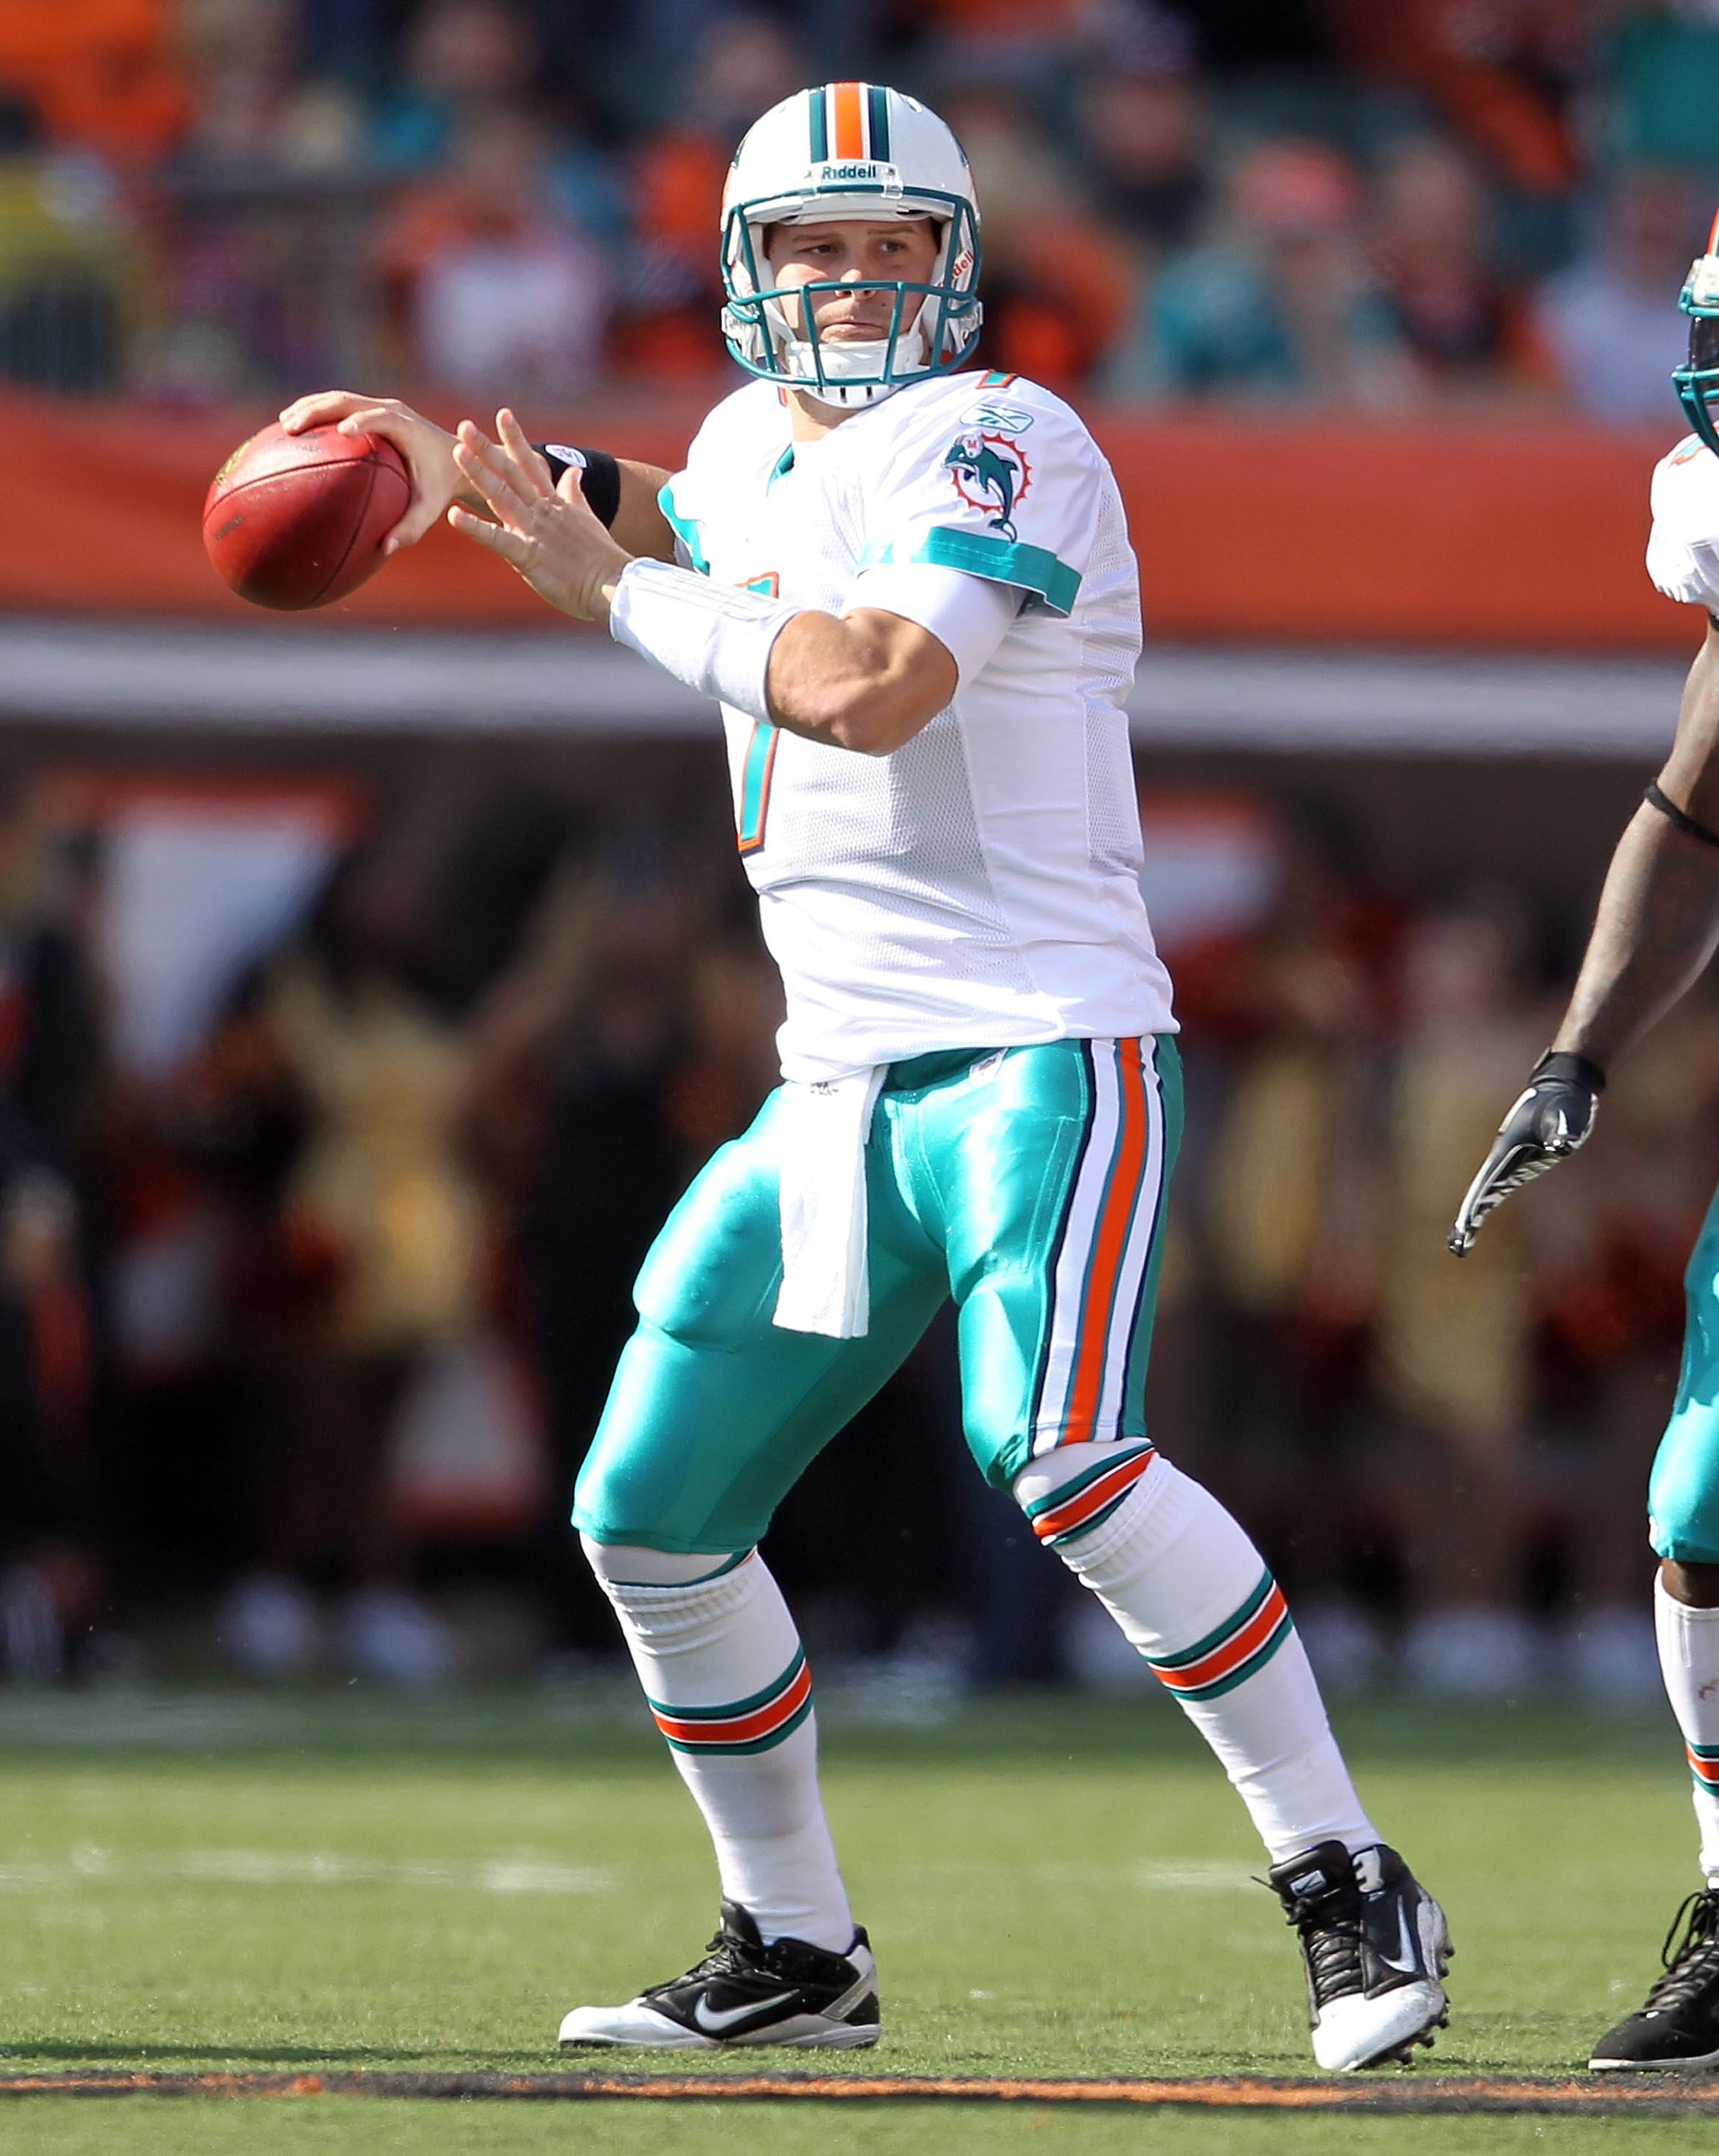 CINCINNATI - OCTOBER 31:  Chad Henne #7 of the Miami Dolphins throws a pass during the NFL game against the Cincinnati Bengals at Paul Brown Stadium on October 31, 2010 in Cincinnati, Ohio.  (Photo by Andy Lyons/Getty Images)